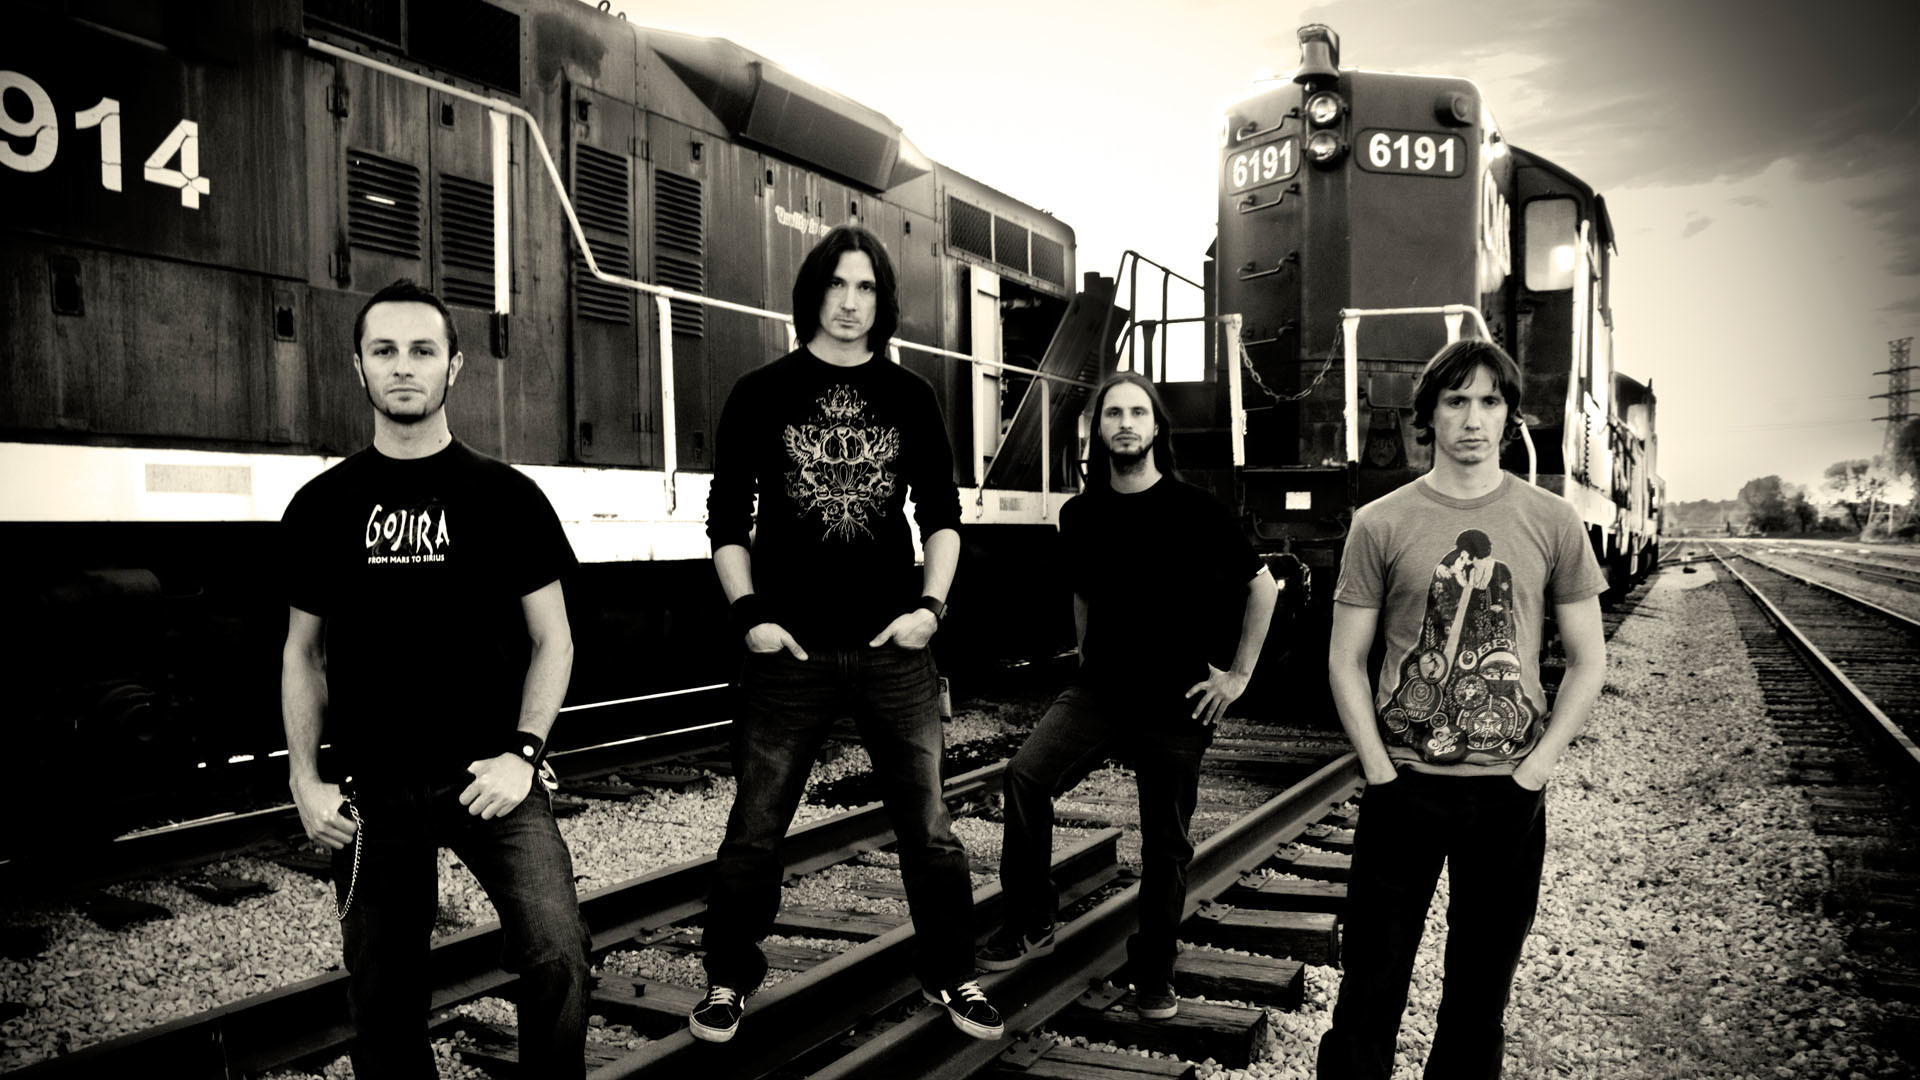 Gojira – Bands, Images metal Gojira – Bands Metal bands pictures and photos  – Metalship Wallpapers